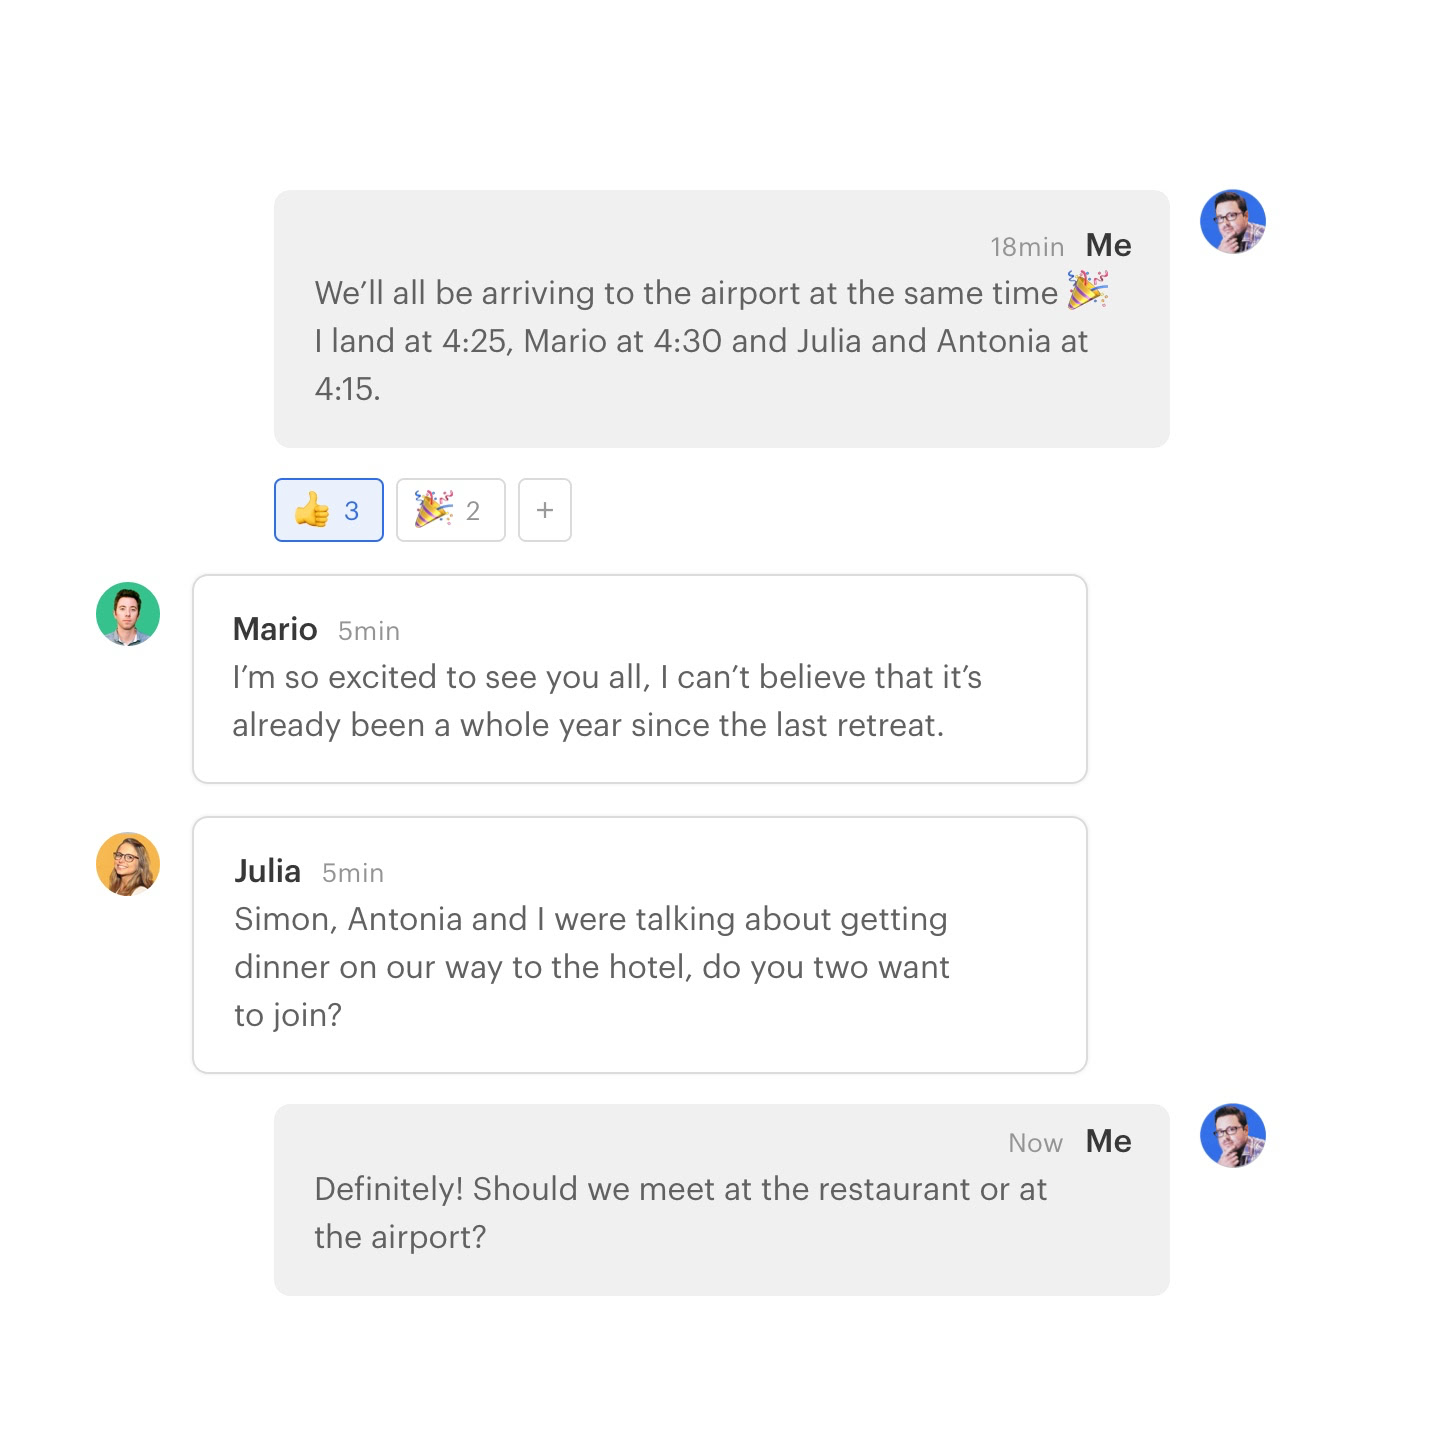 twist app user interface showing messages